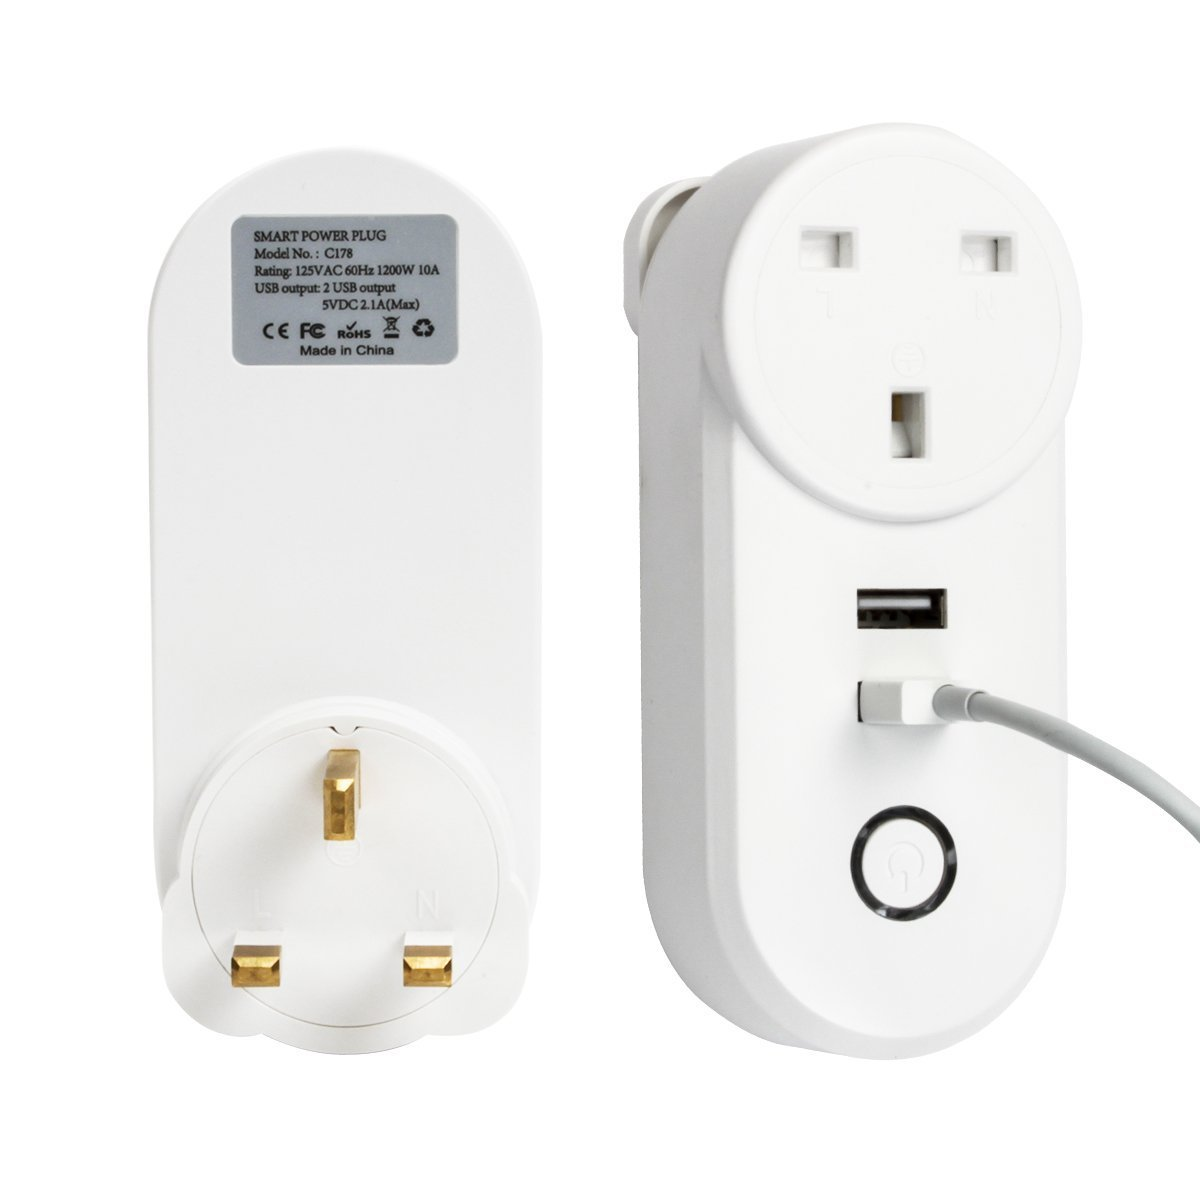 Wifi Smart Power Plug USB-Steckdose Google Assitance Control